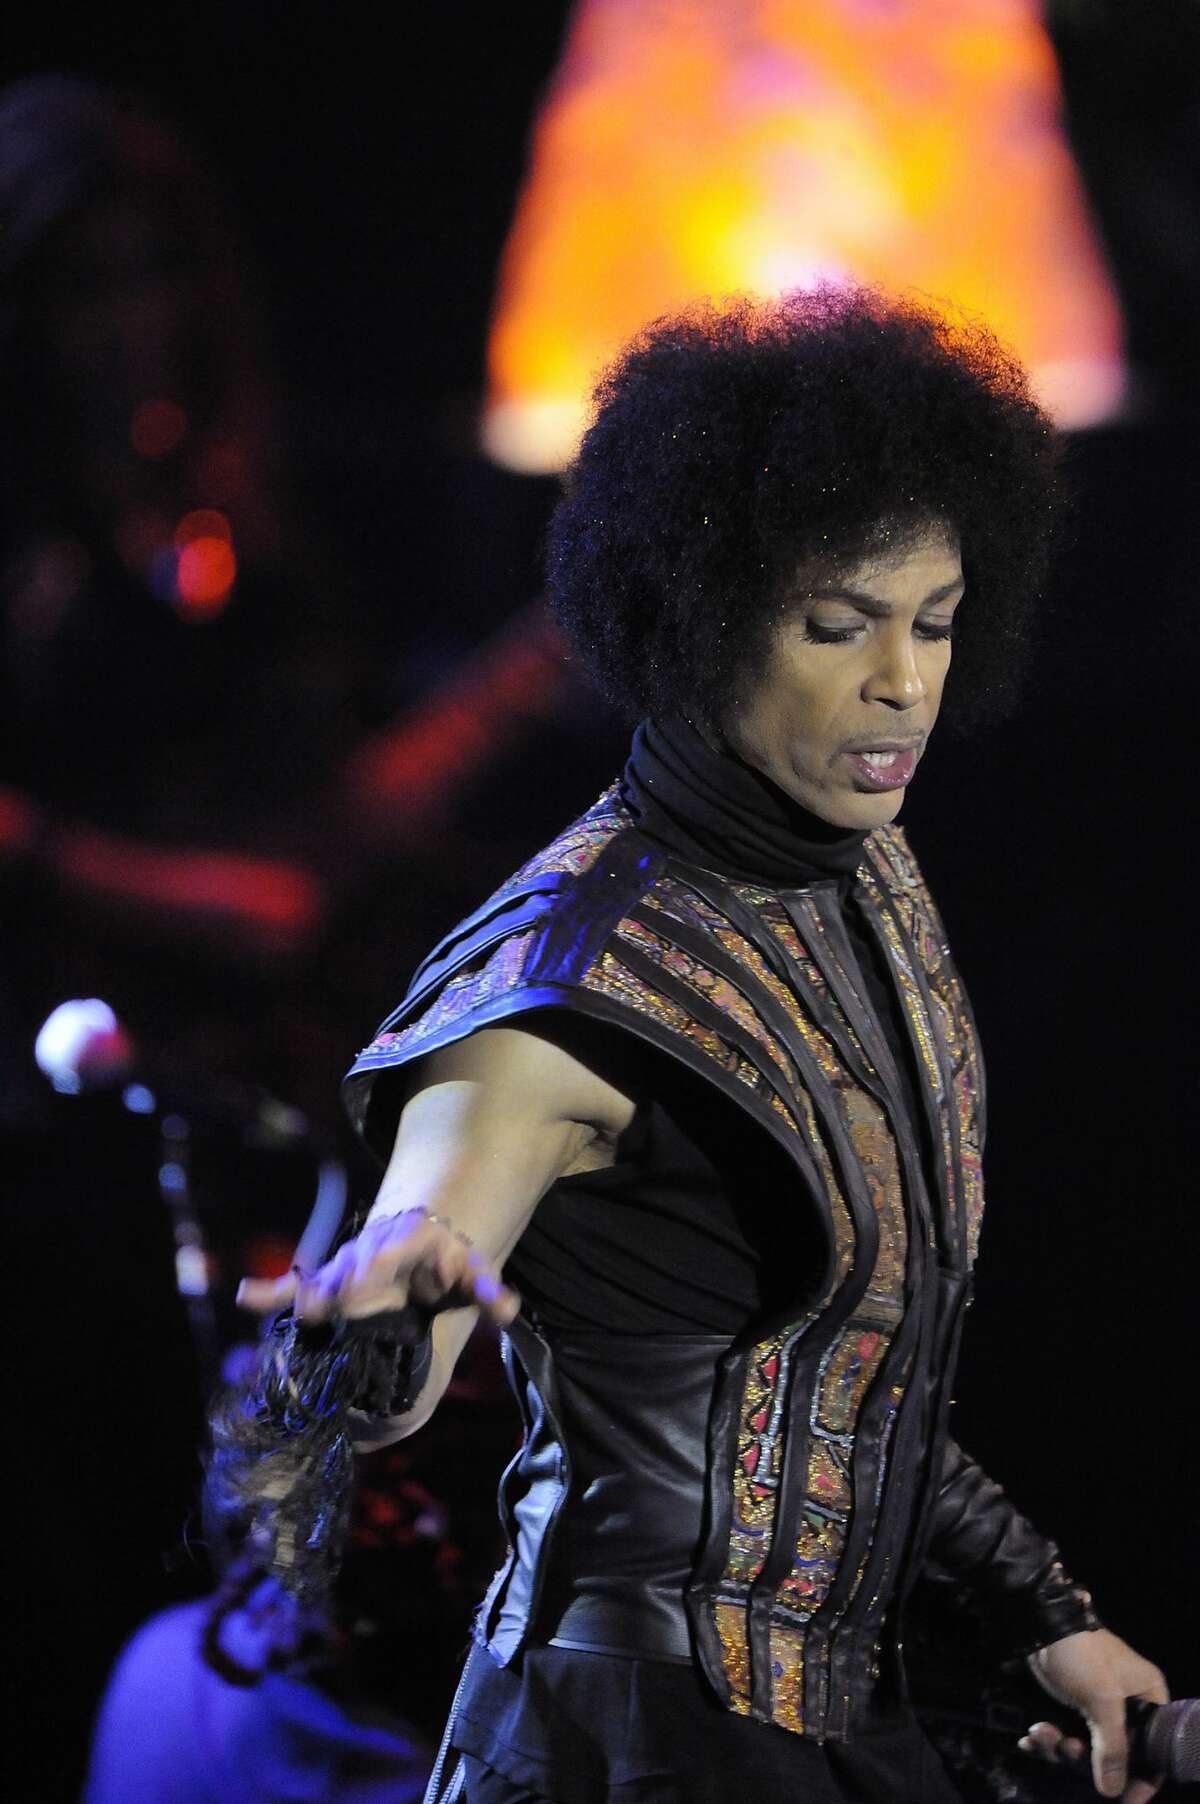 Prince performed at Mohegan Sun in 2013.